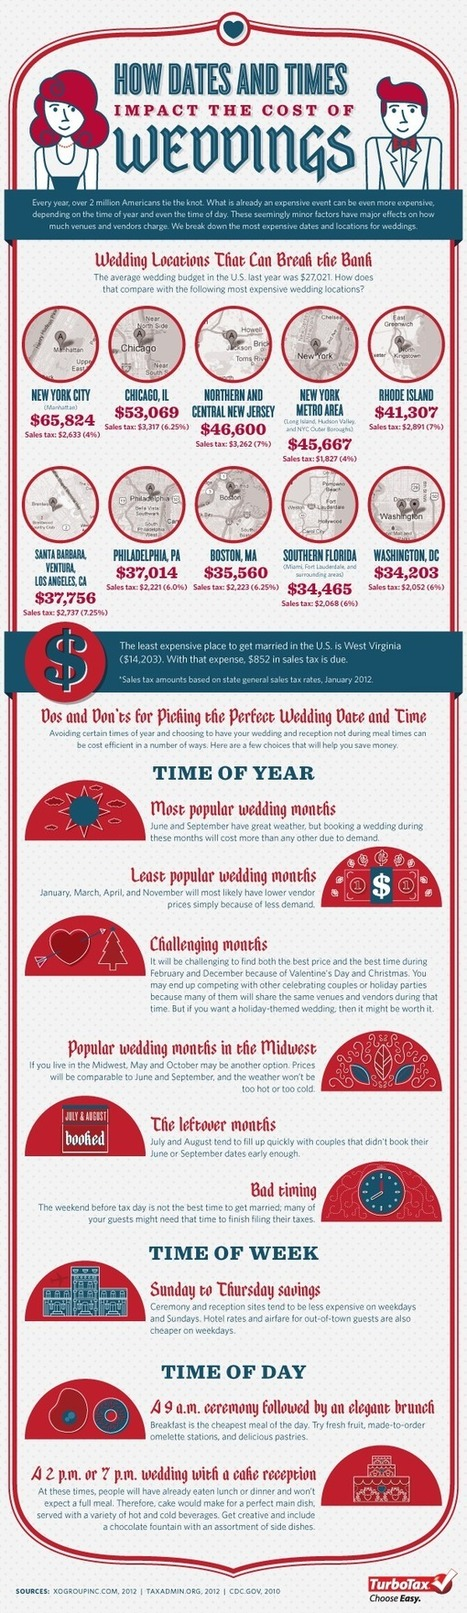 Wedding Costs - Location and Time do Matter - Bitsy Bride | Getting Married | Scoop.it